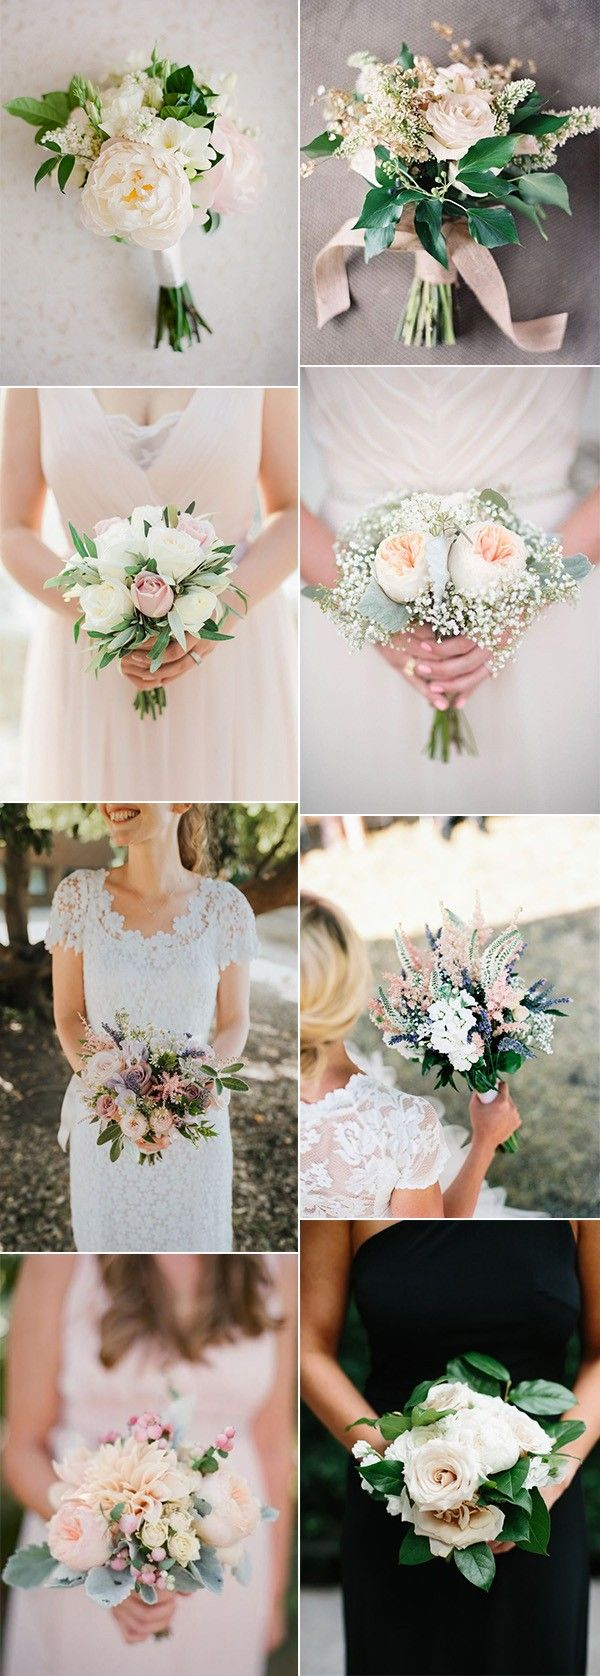 Trending-20 Pretty and Practical Small Wedding Bouquets for 2019 Brides – Page 2 of 2